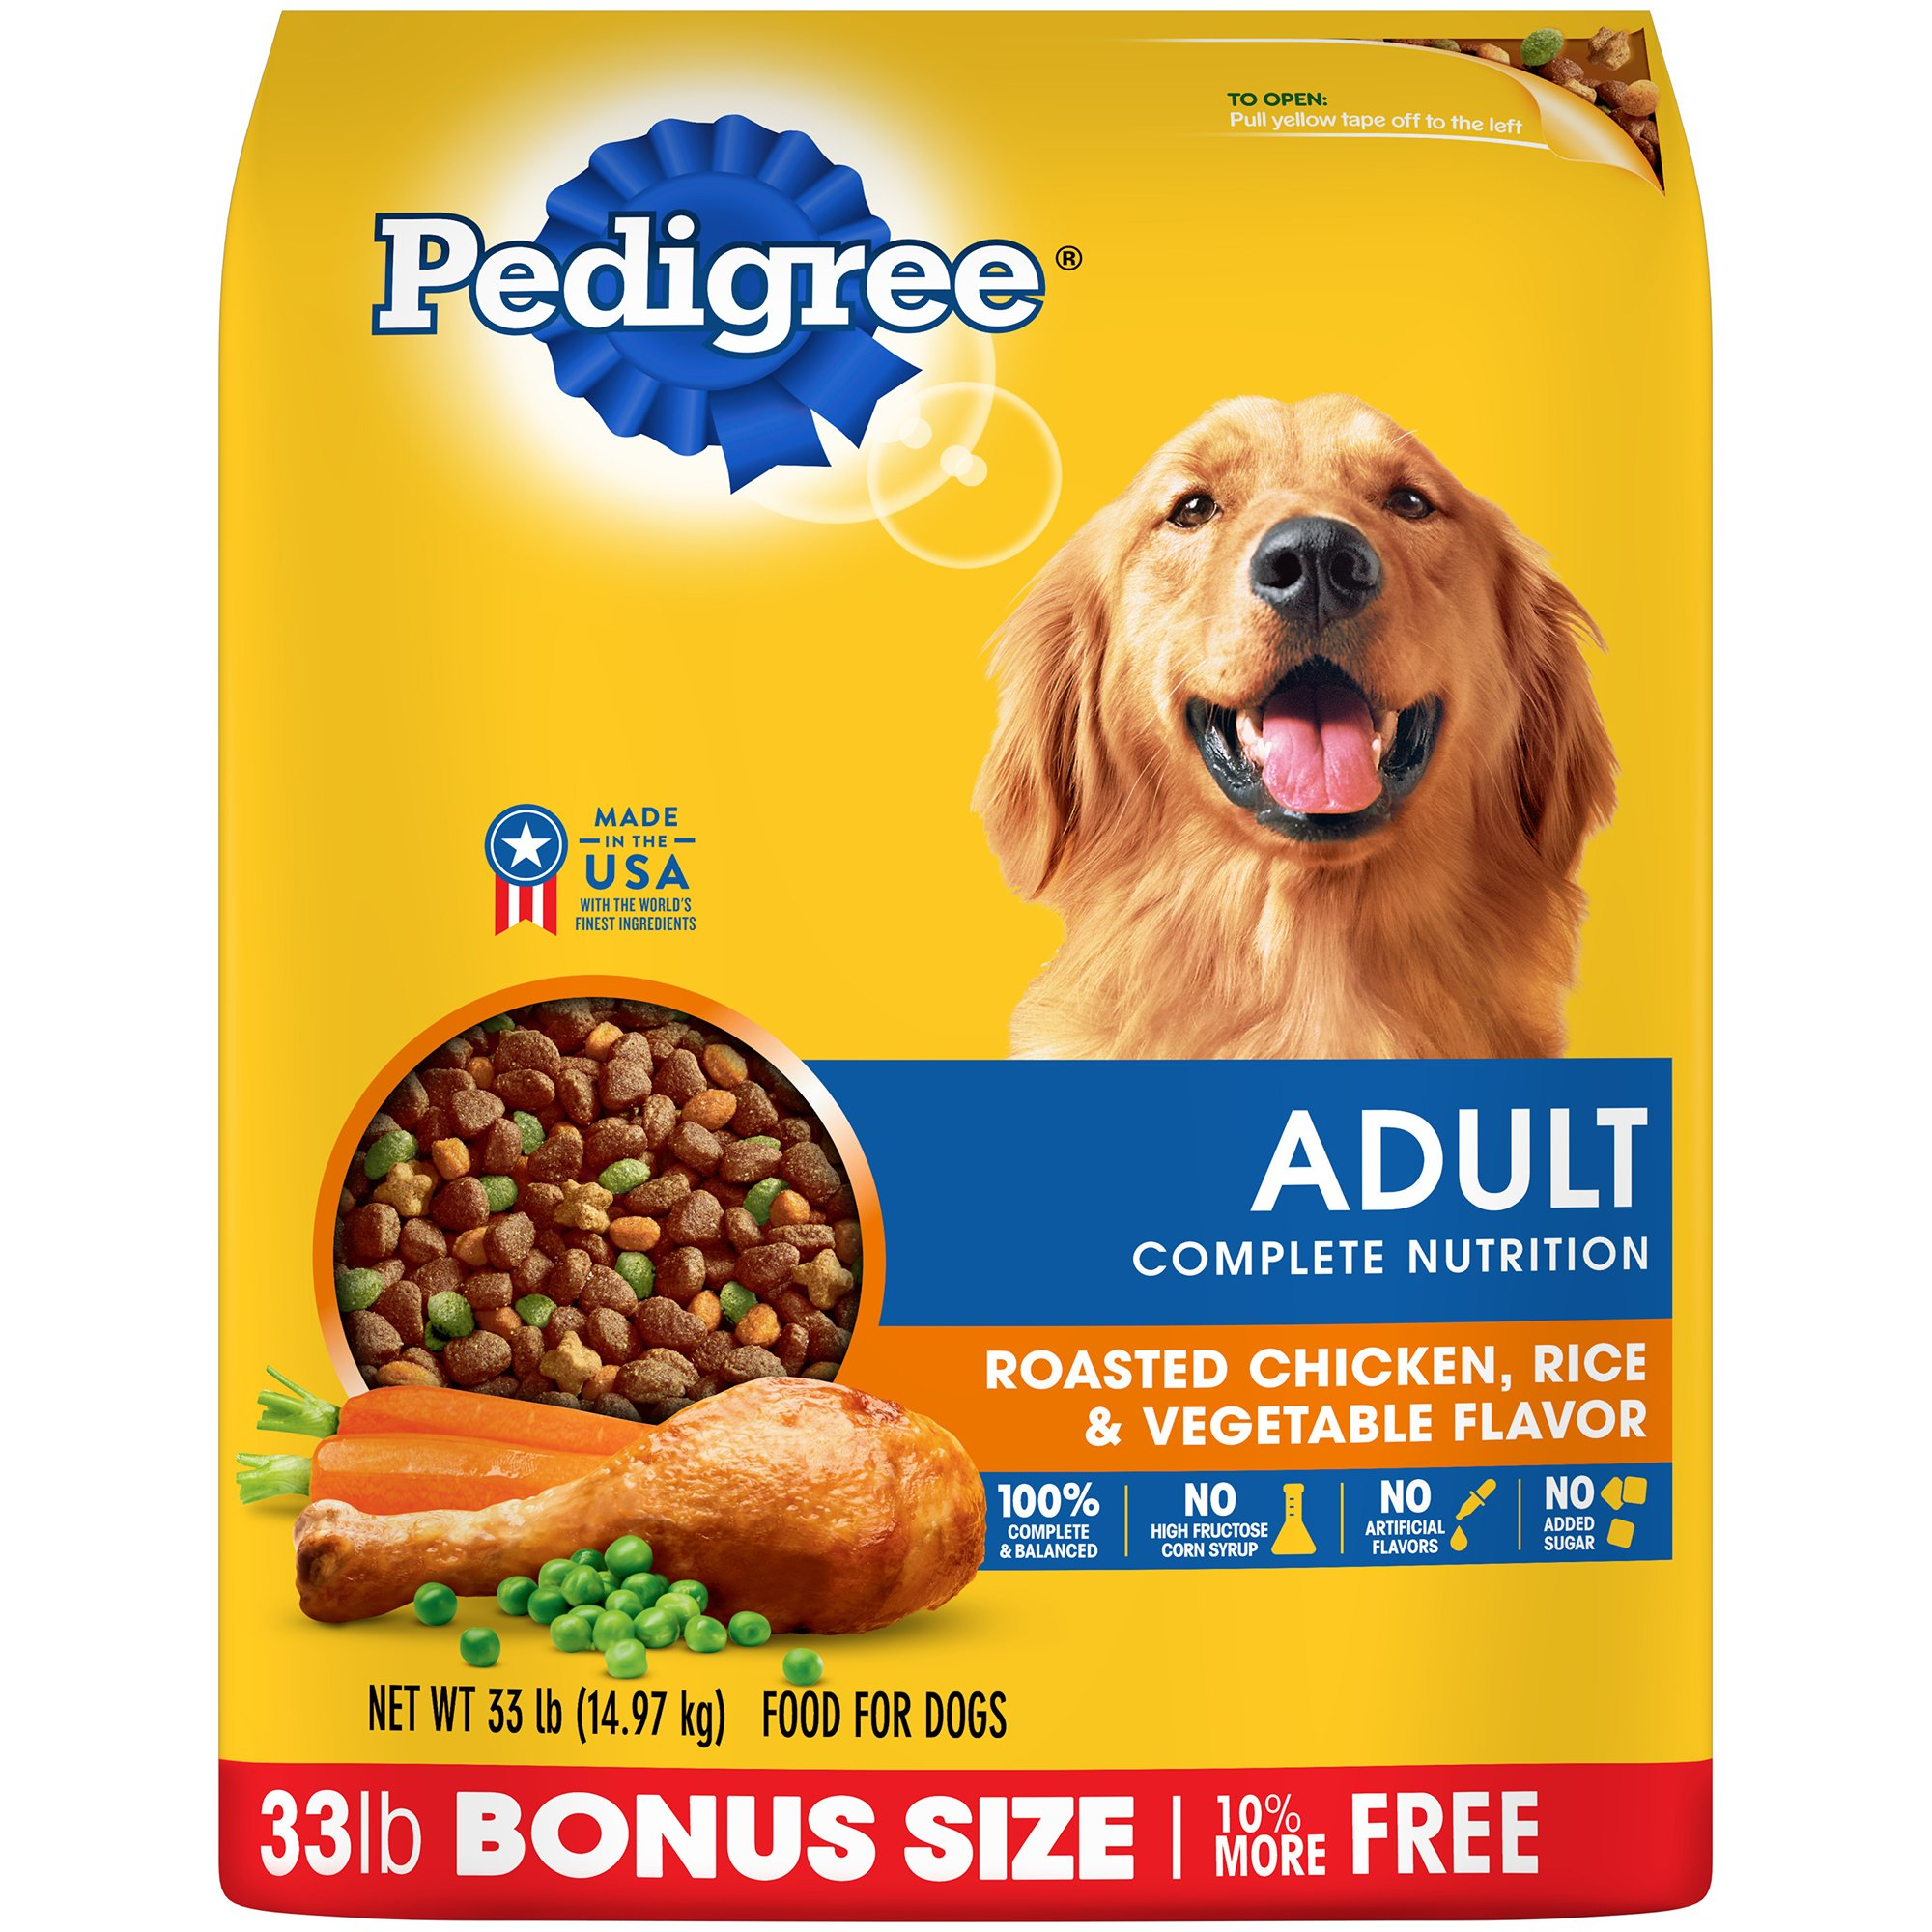 Pedigree Complete Nutrition Adult Dry Dog Food Roasted Chicken, Rice & Vegetable Flavor, 33 Lb. Bag by Pedigree